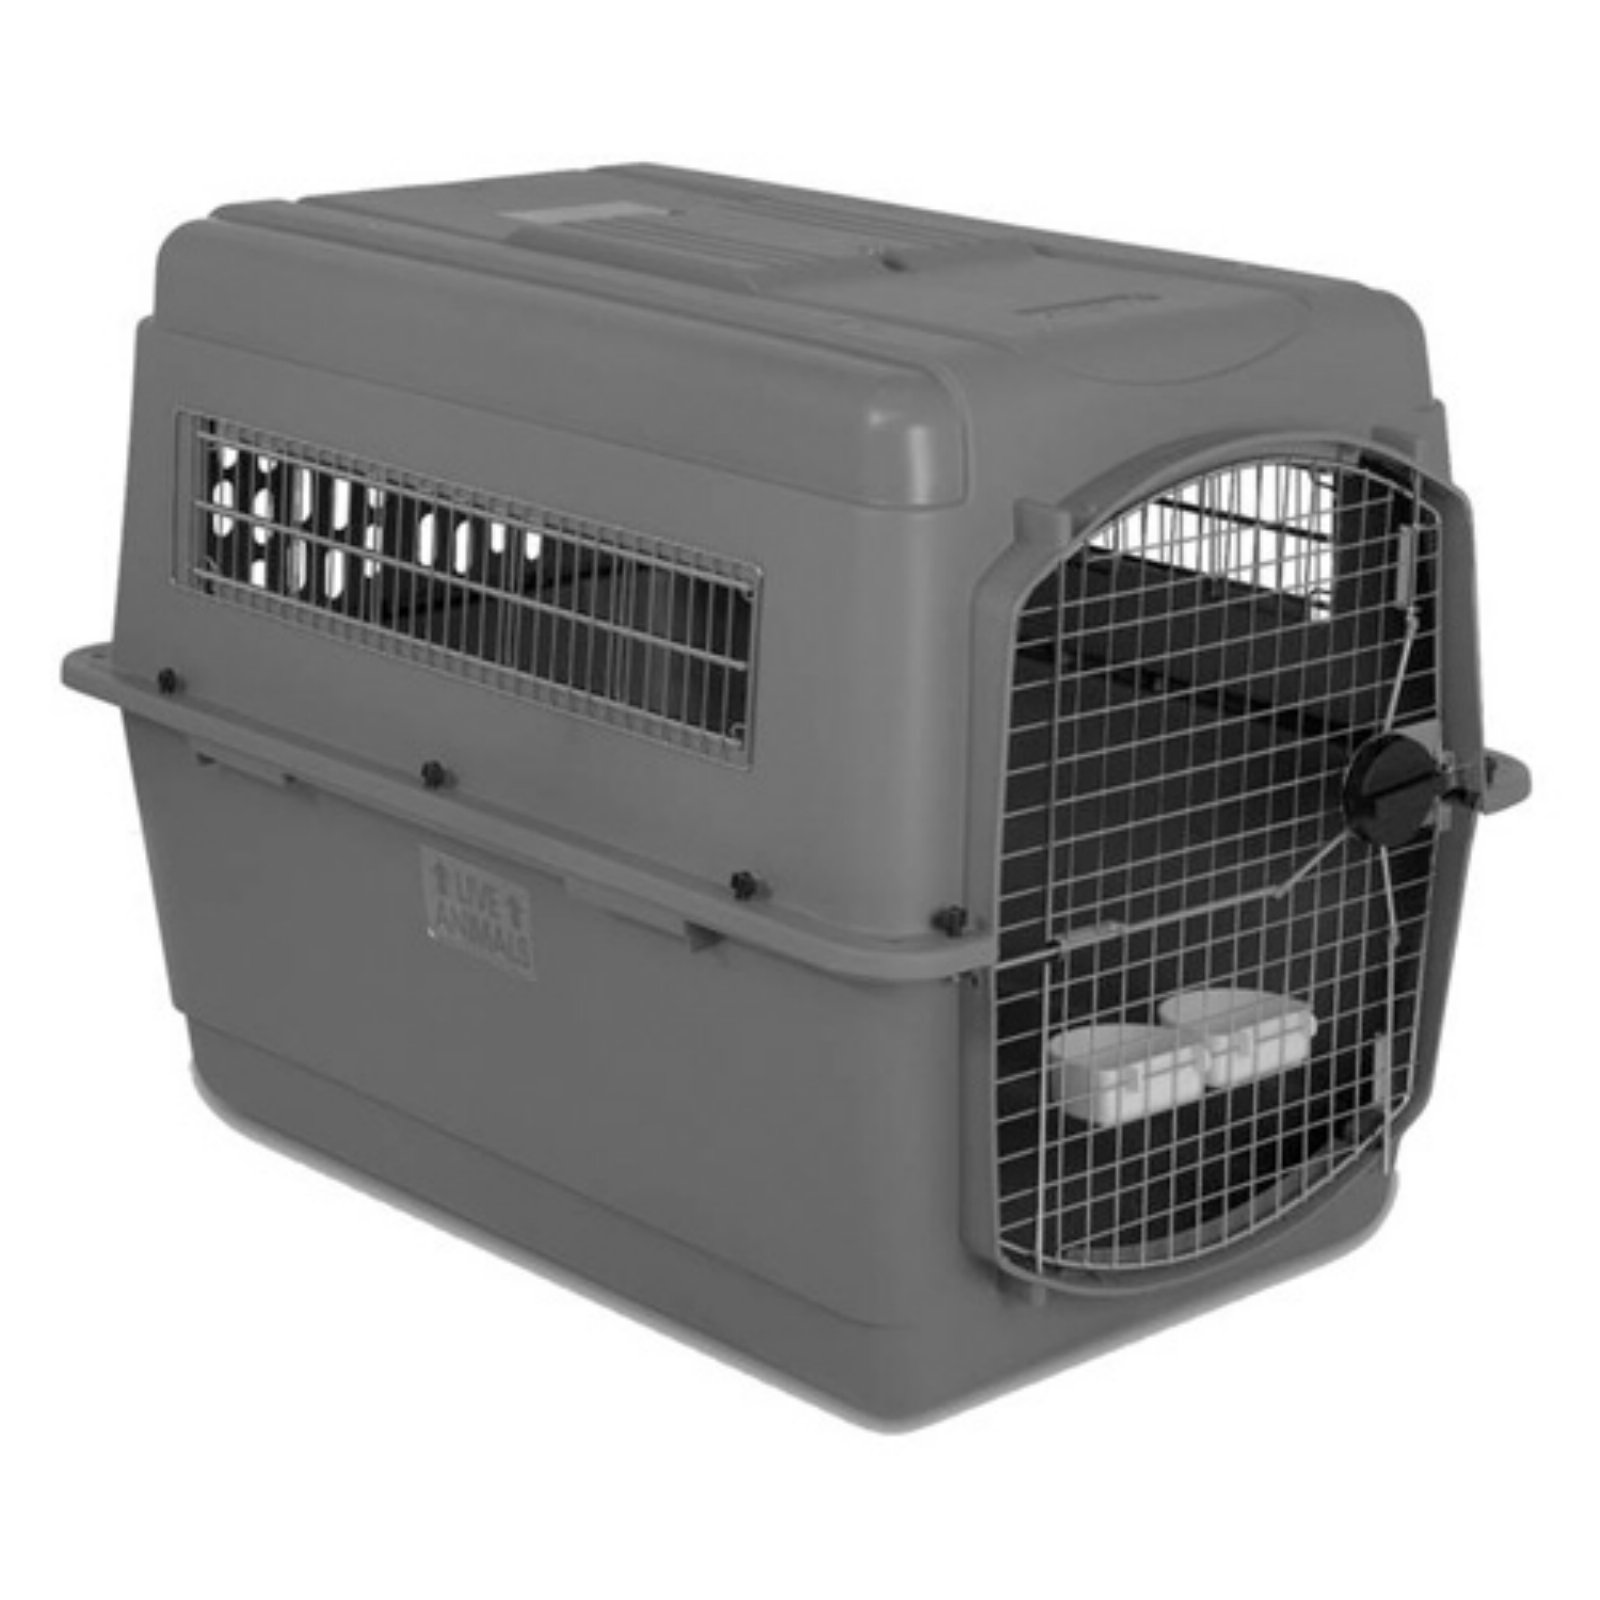 Petmate Sky Kennel Pet Carrier, 50-70 Lbs